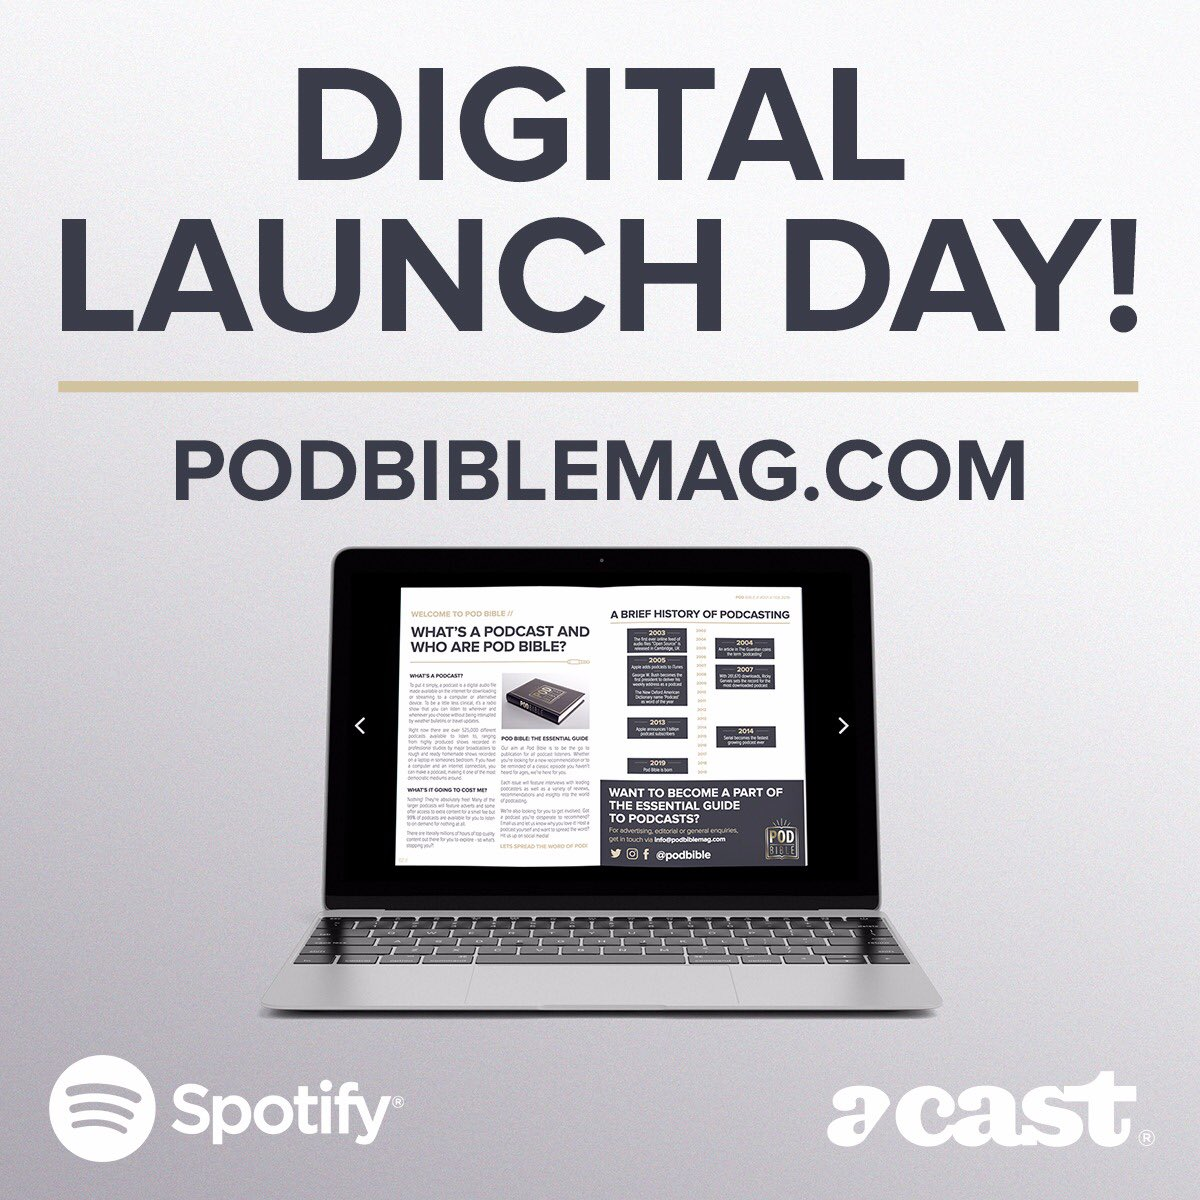 It's here! Read issue #001 NOW at http://podbiblemag.com #podbible #podcast #podcasting #podcastlife #podnation